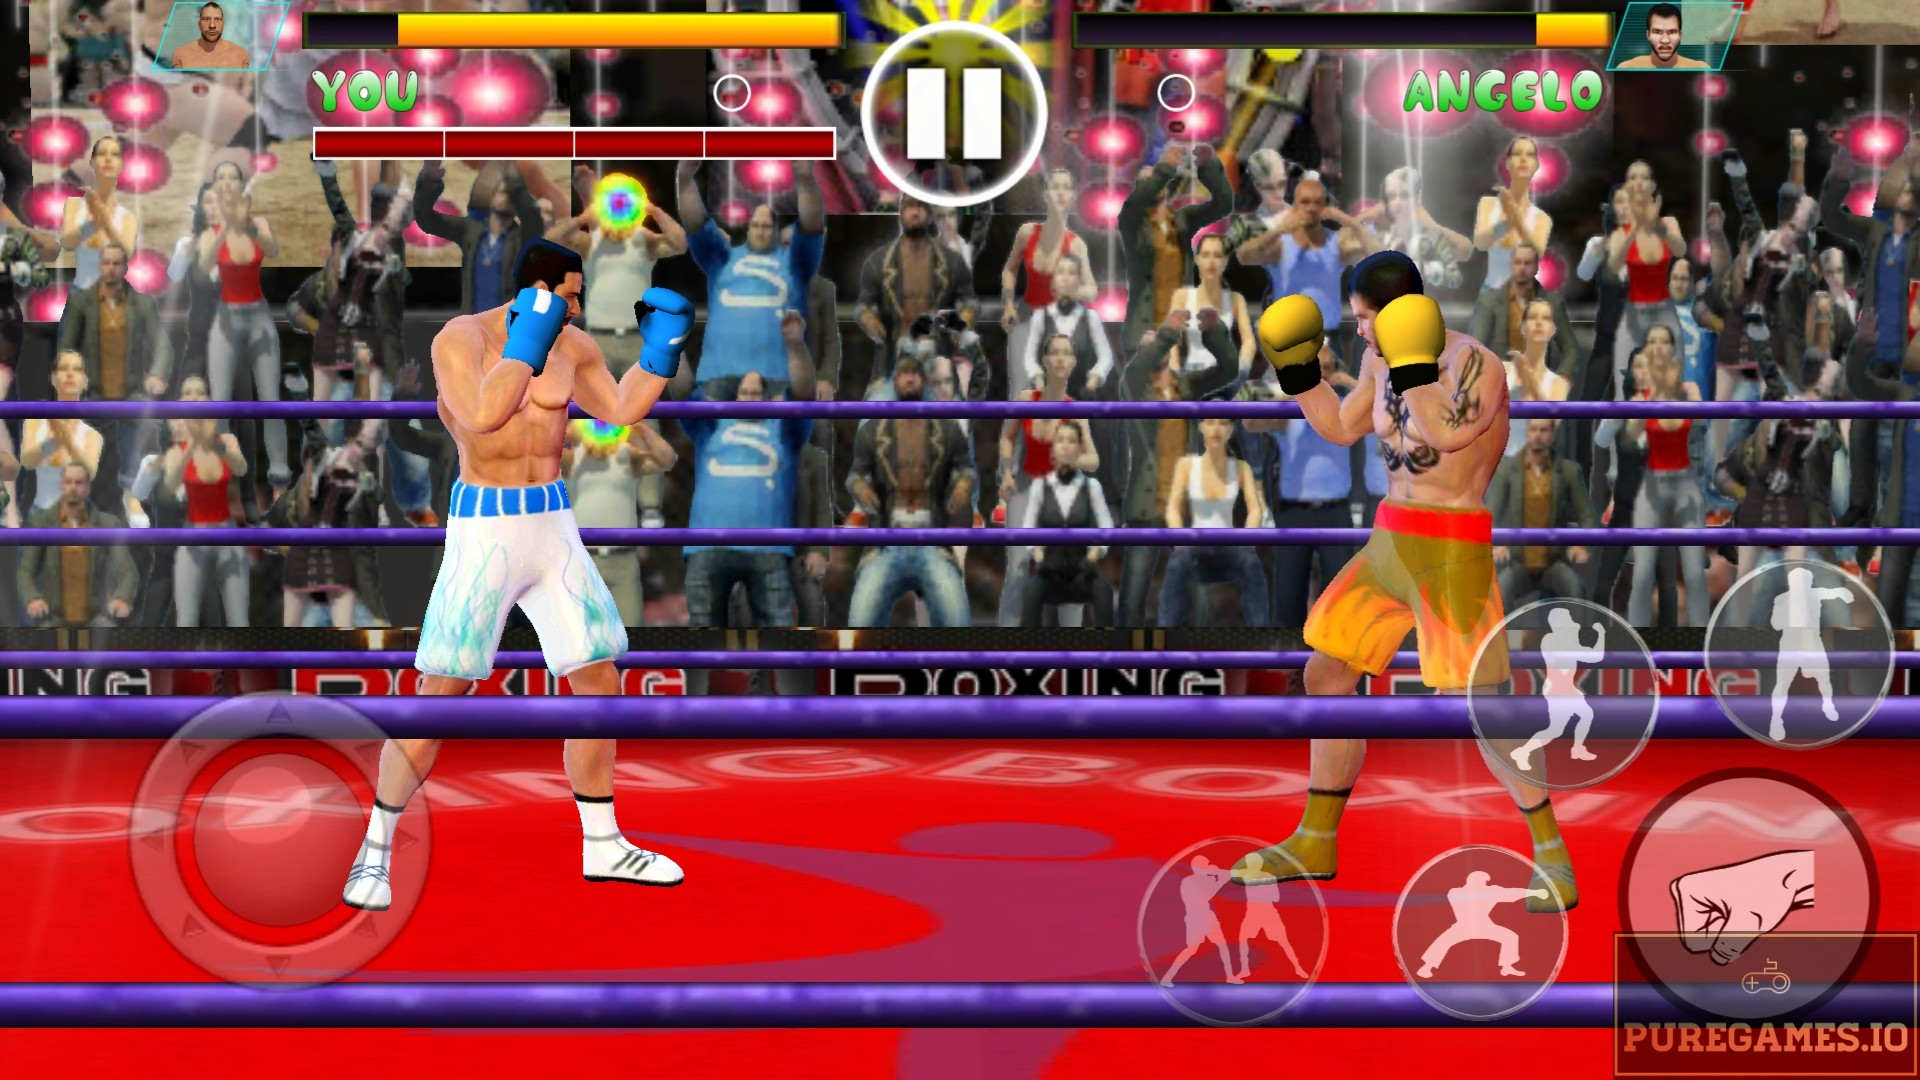 Download Ninja Punch Boxing Warrior: Kung Fu Karate Fighter APK - For Android 11